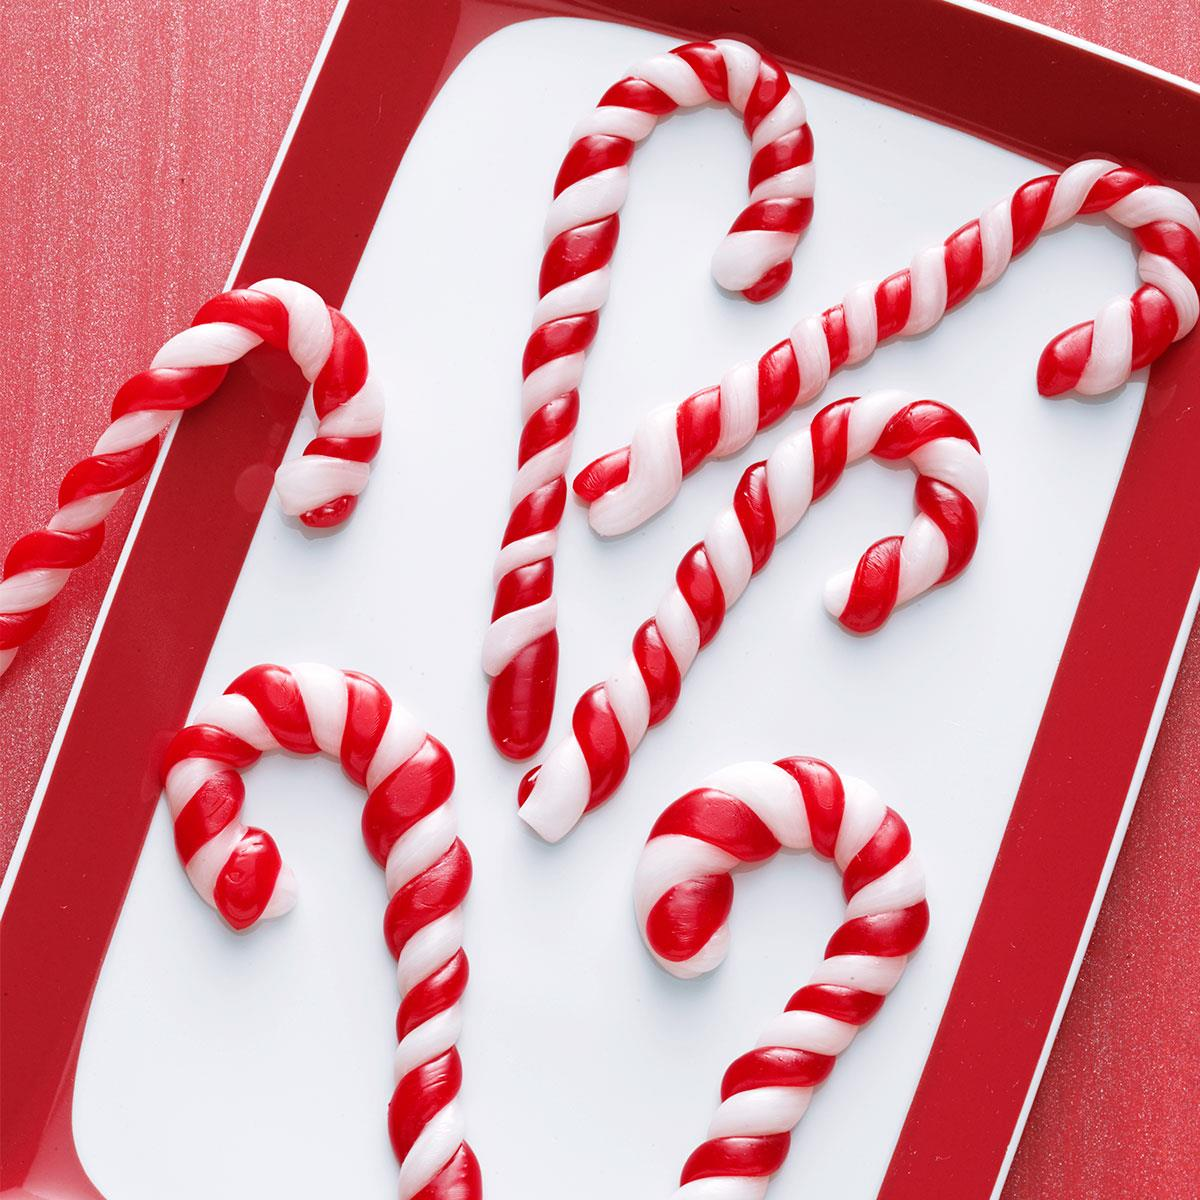 Pulled Taffy Candy Canes Recipe | Taste of Home